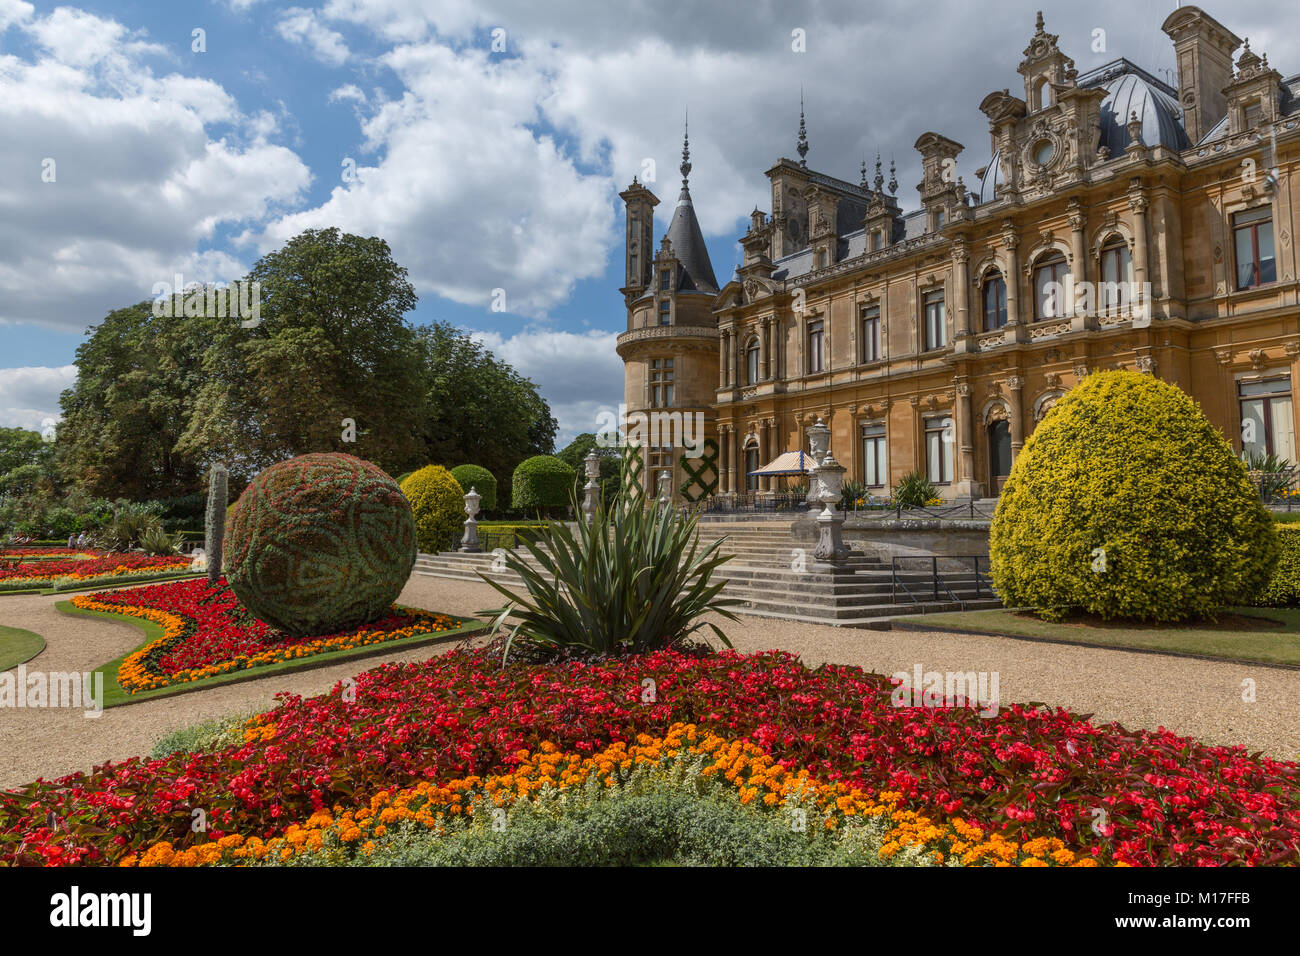 Parterre Planting Stock Photos & Parterre Planting Stock Images - Alamy